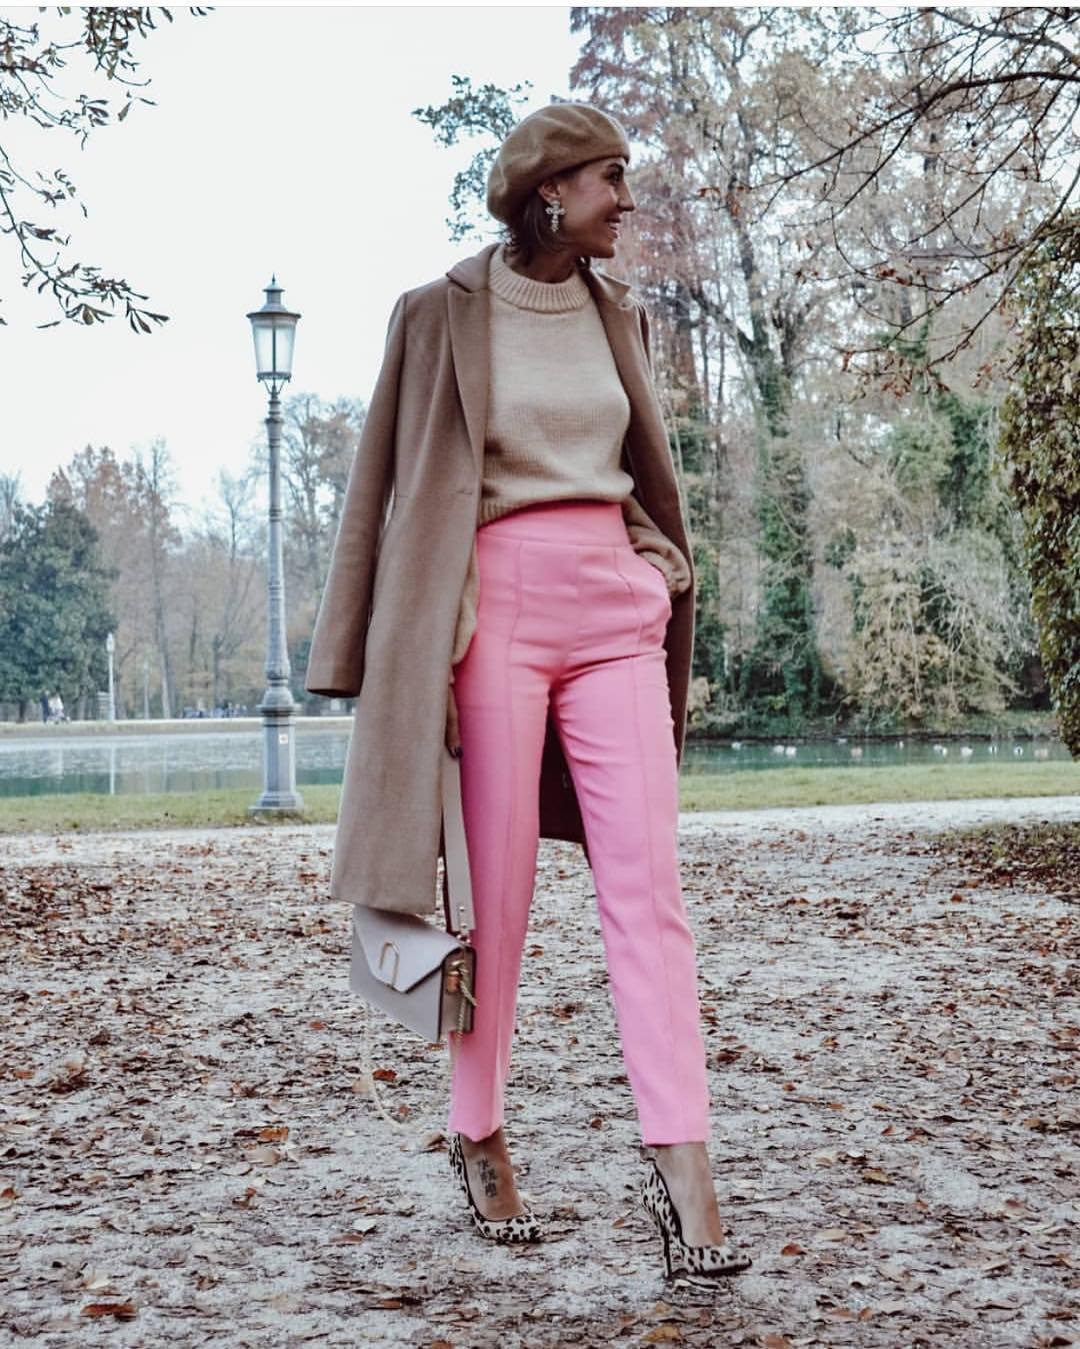 Parisian Street Style For Fall: Beret Hat, Coat And Tailored Pants 2020